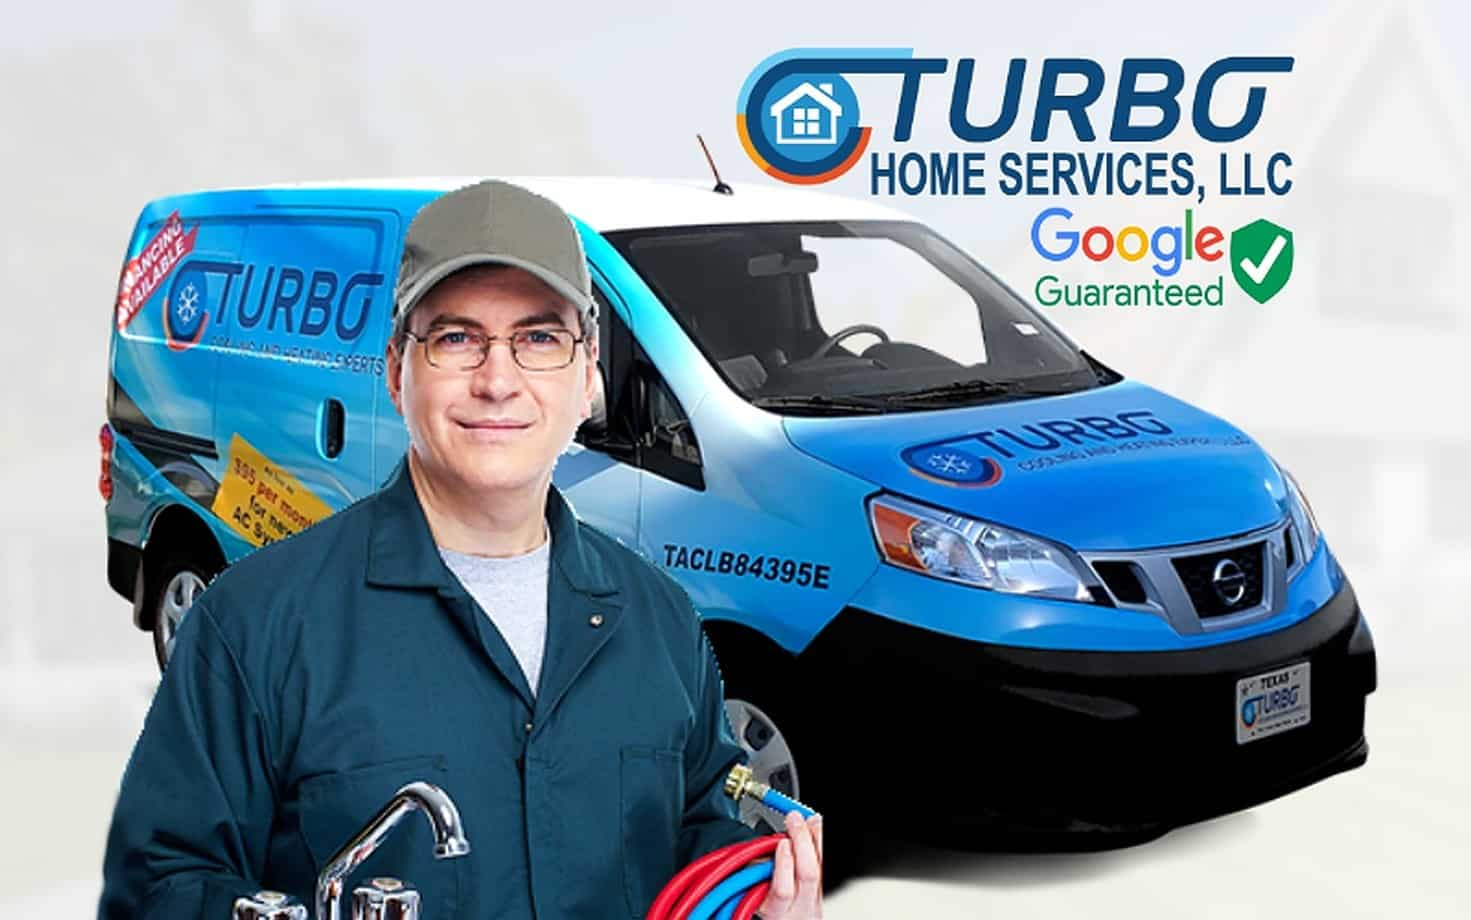 Turbo Home Services Plumbing , Air Conditioning, Electrical & HVAC Repair